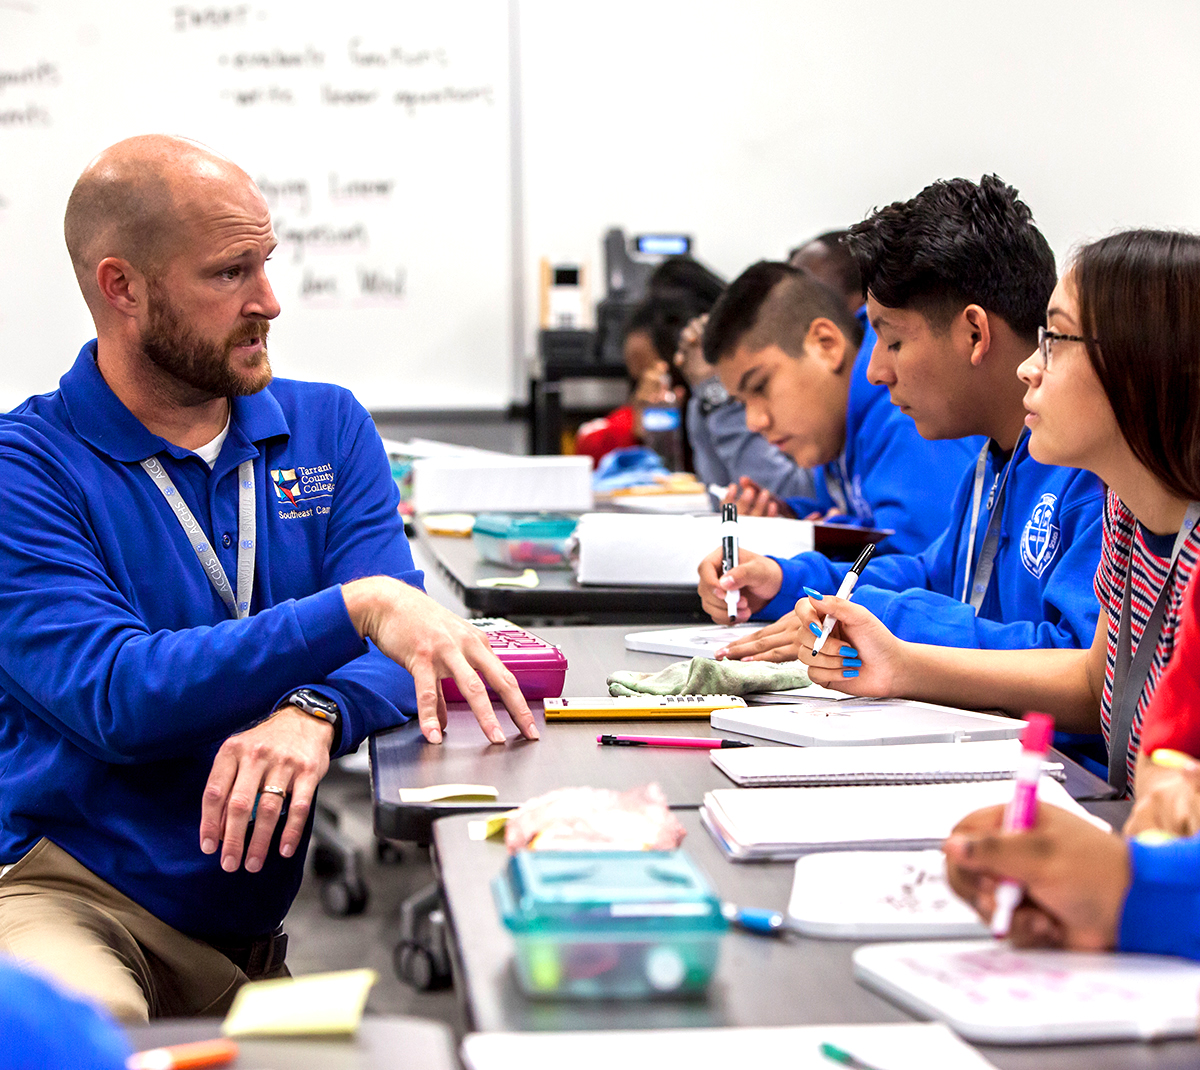 Evidence of Excellence: Using Data to Elevate Teacher Preparation in Texas